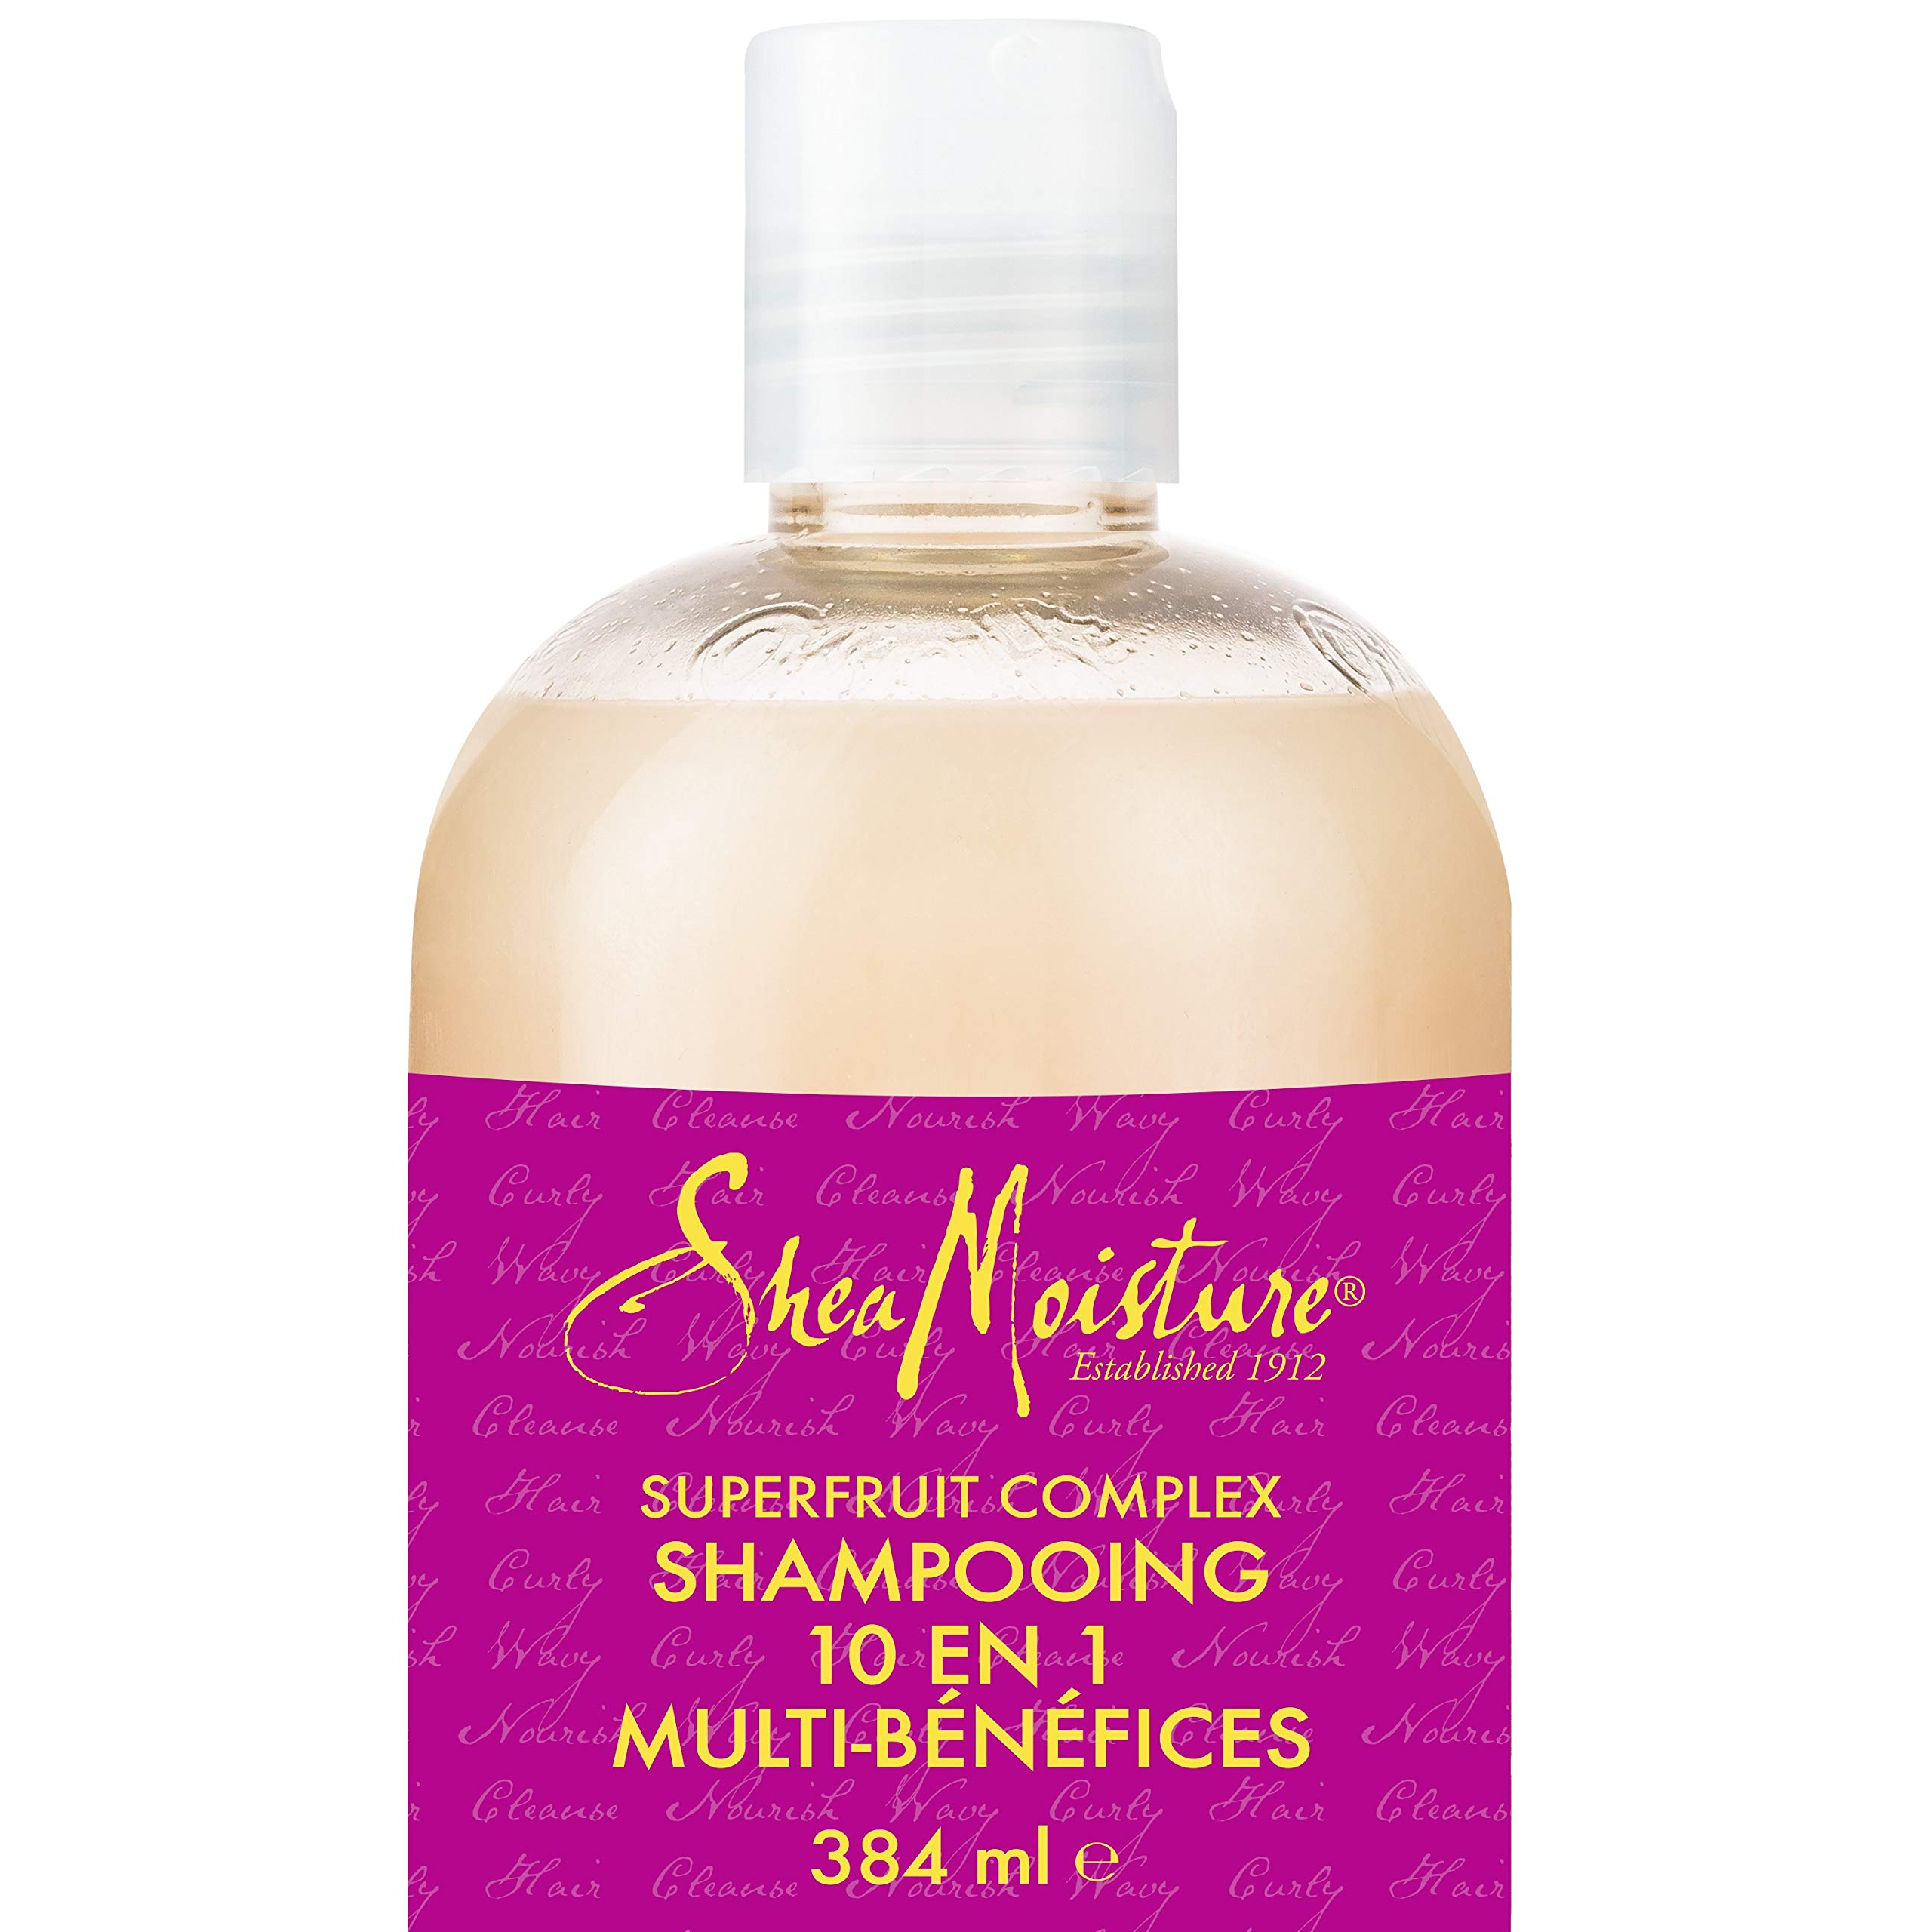 Shea Moisture Superfruit Complex 10-in-1 Multi-Benefit Shampoo, with Marula Oil & Biotin, to Cleanse and Nourish Wavy, Curly Hair 384 ml